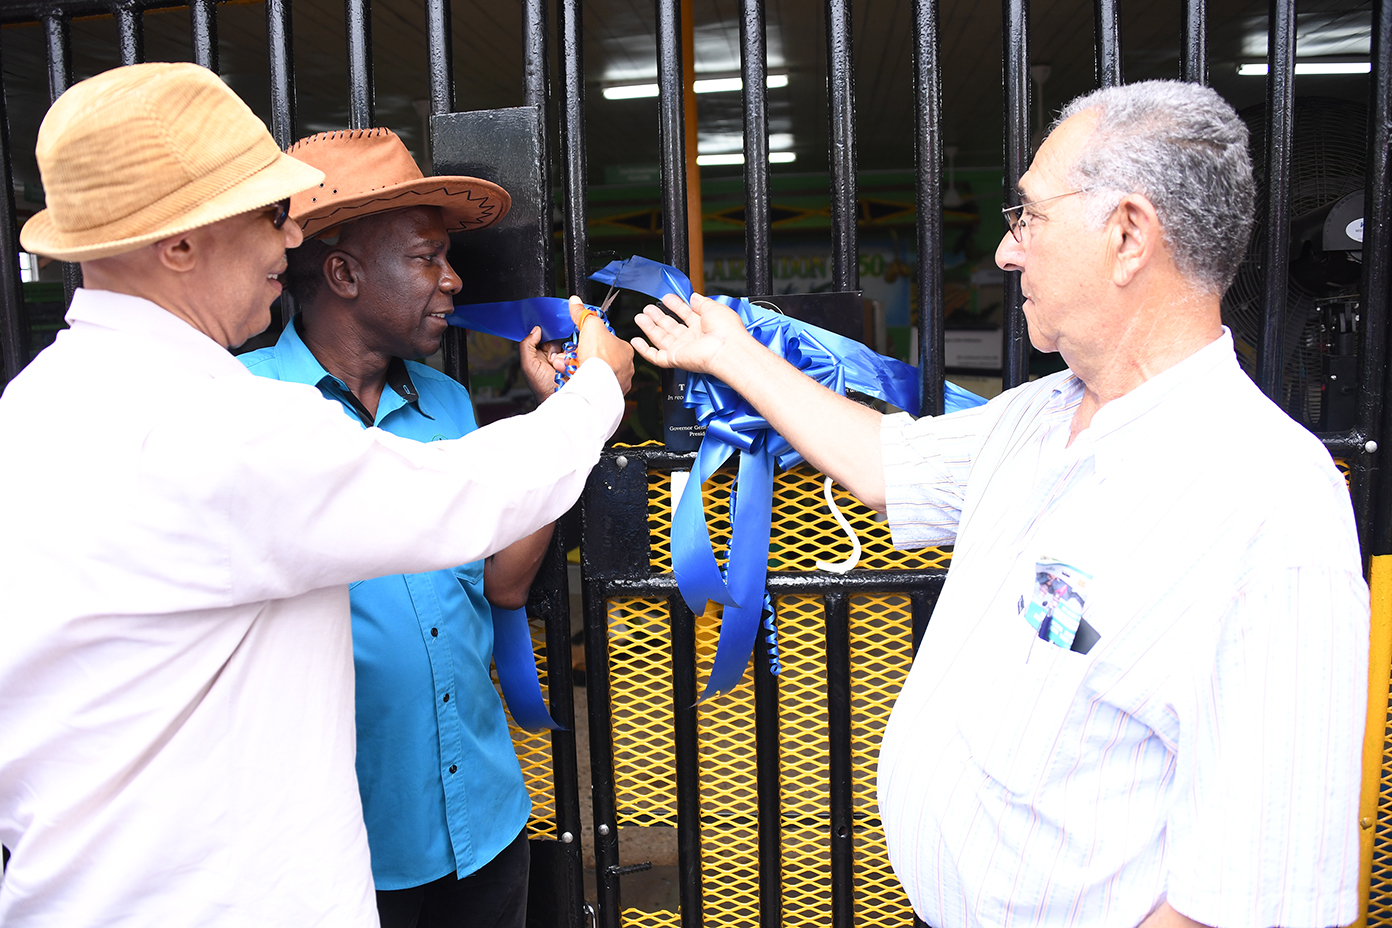 His Excellency Sir Patrick Allen (left) officially opens The Honourable William Shagoury Building. Looking on are the Hon William Shagoury, Custos of Clarendon, (right) and President of Jamaica Agricultural Society, Mr. Norman Grant.